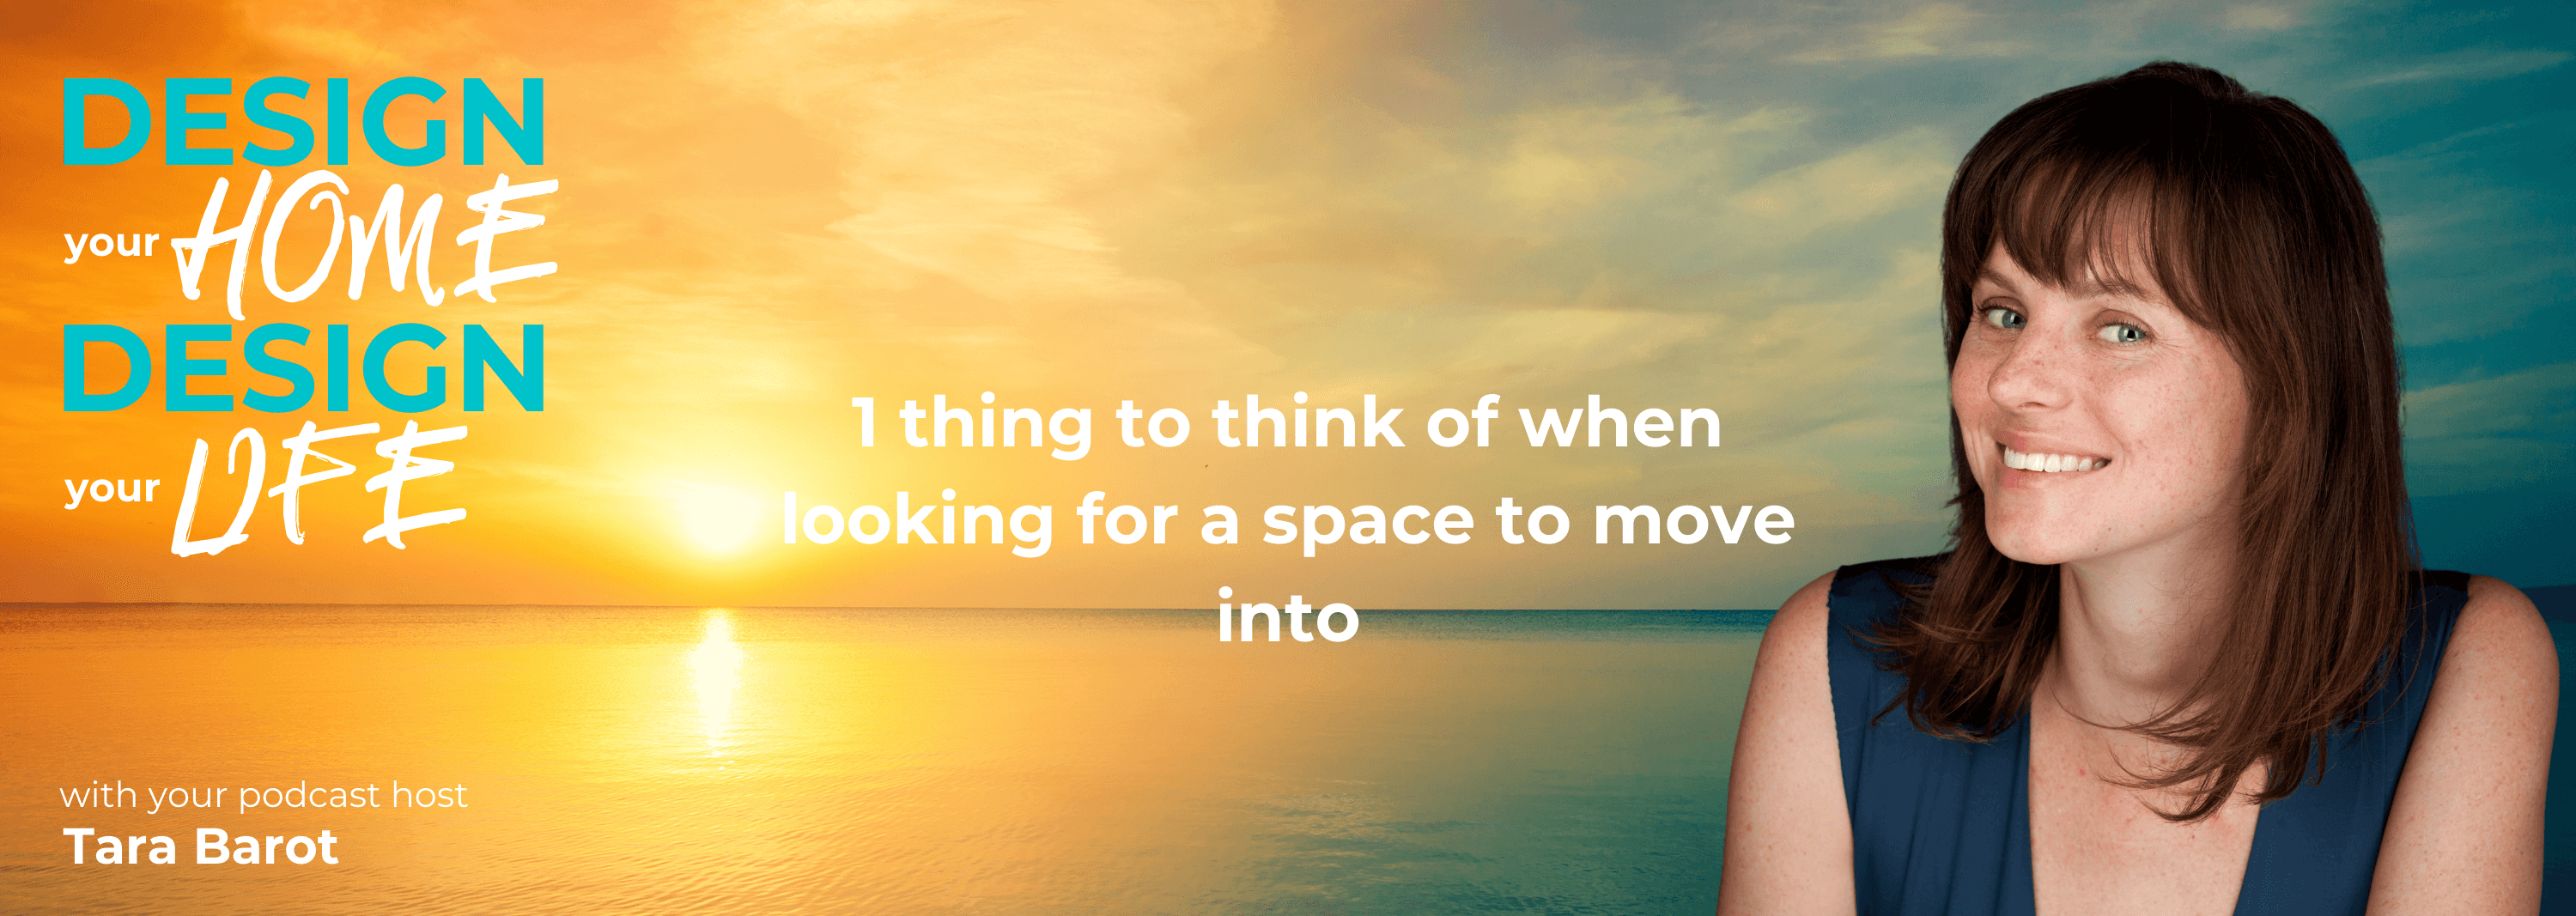 1 thing to think of when looking for a space to move into #7